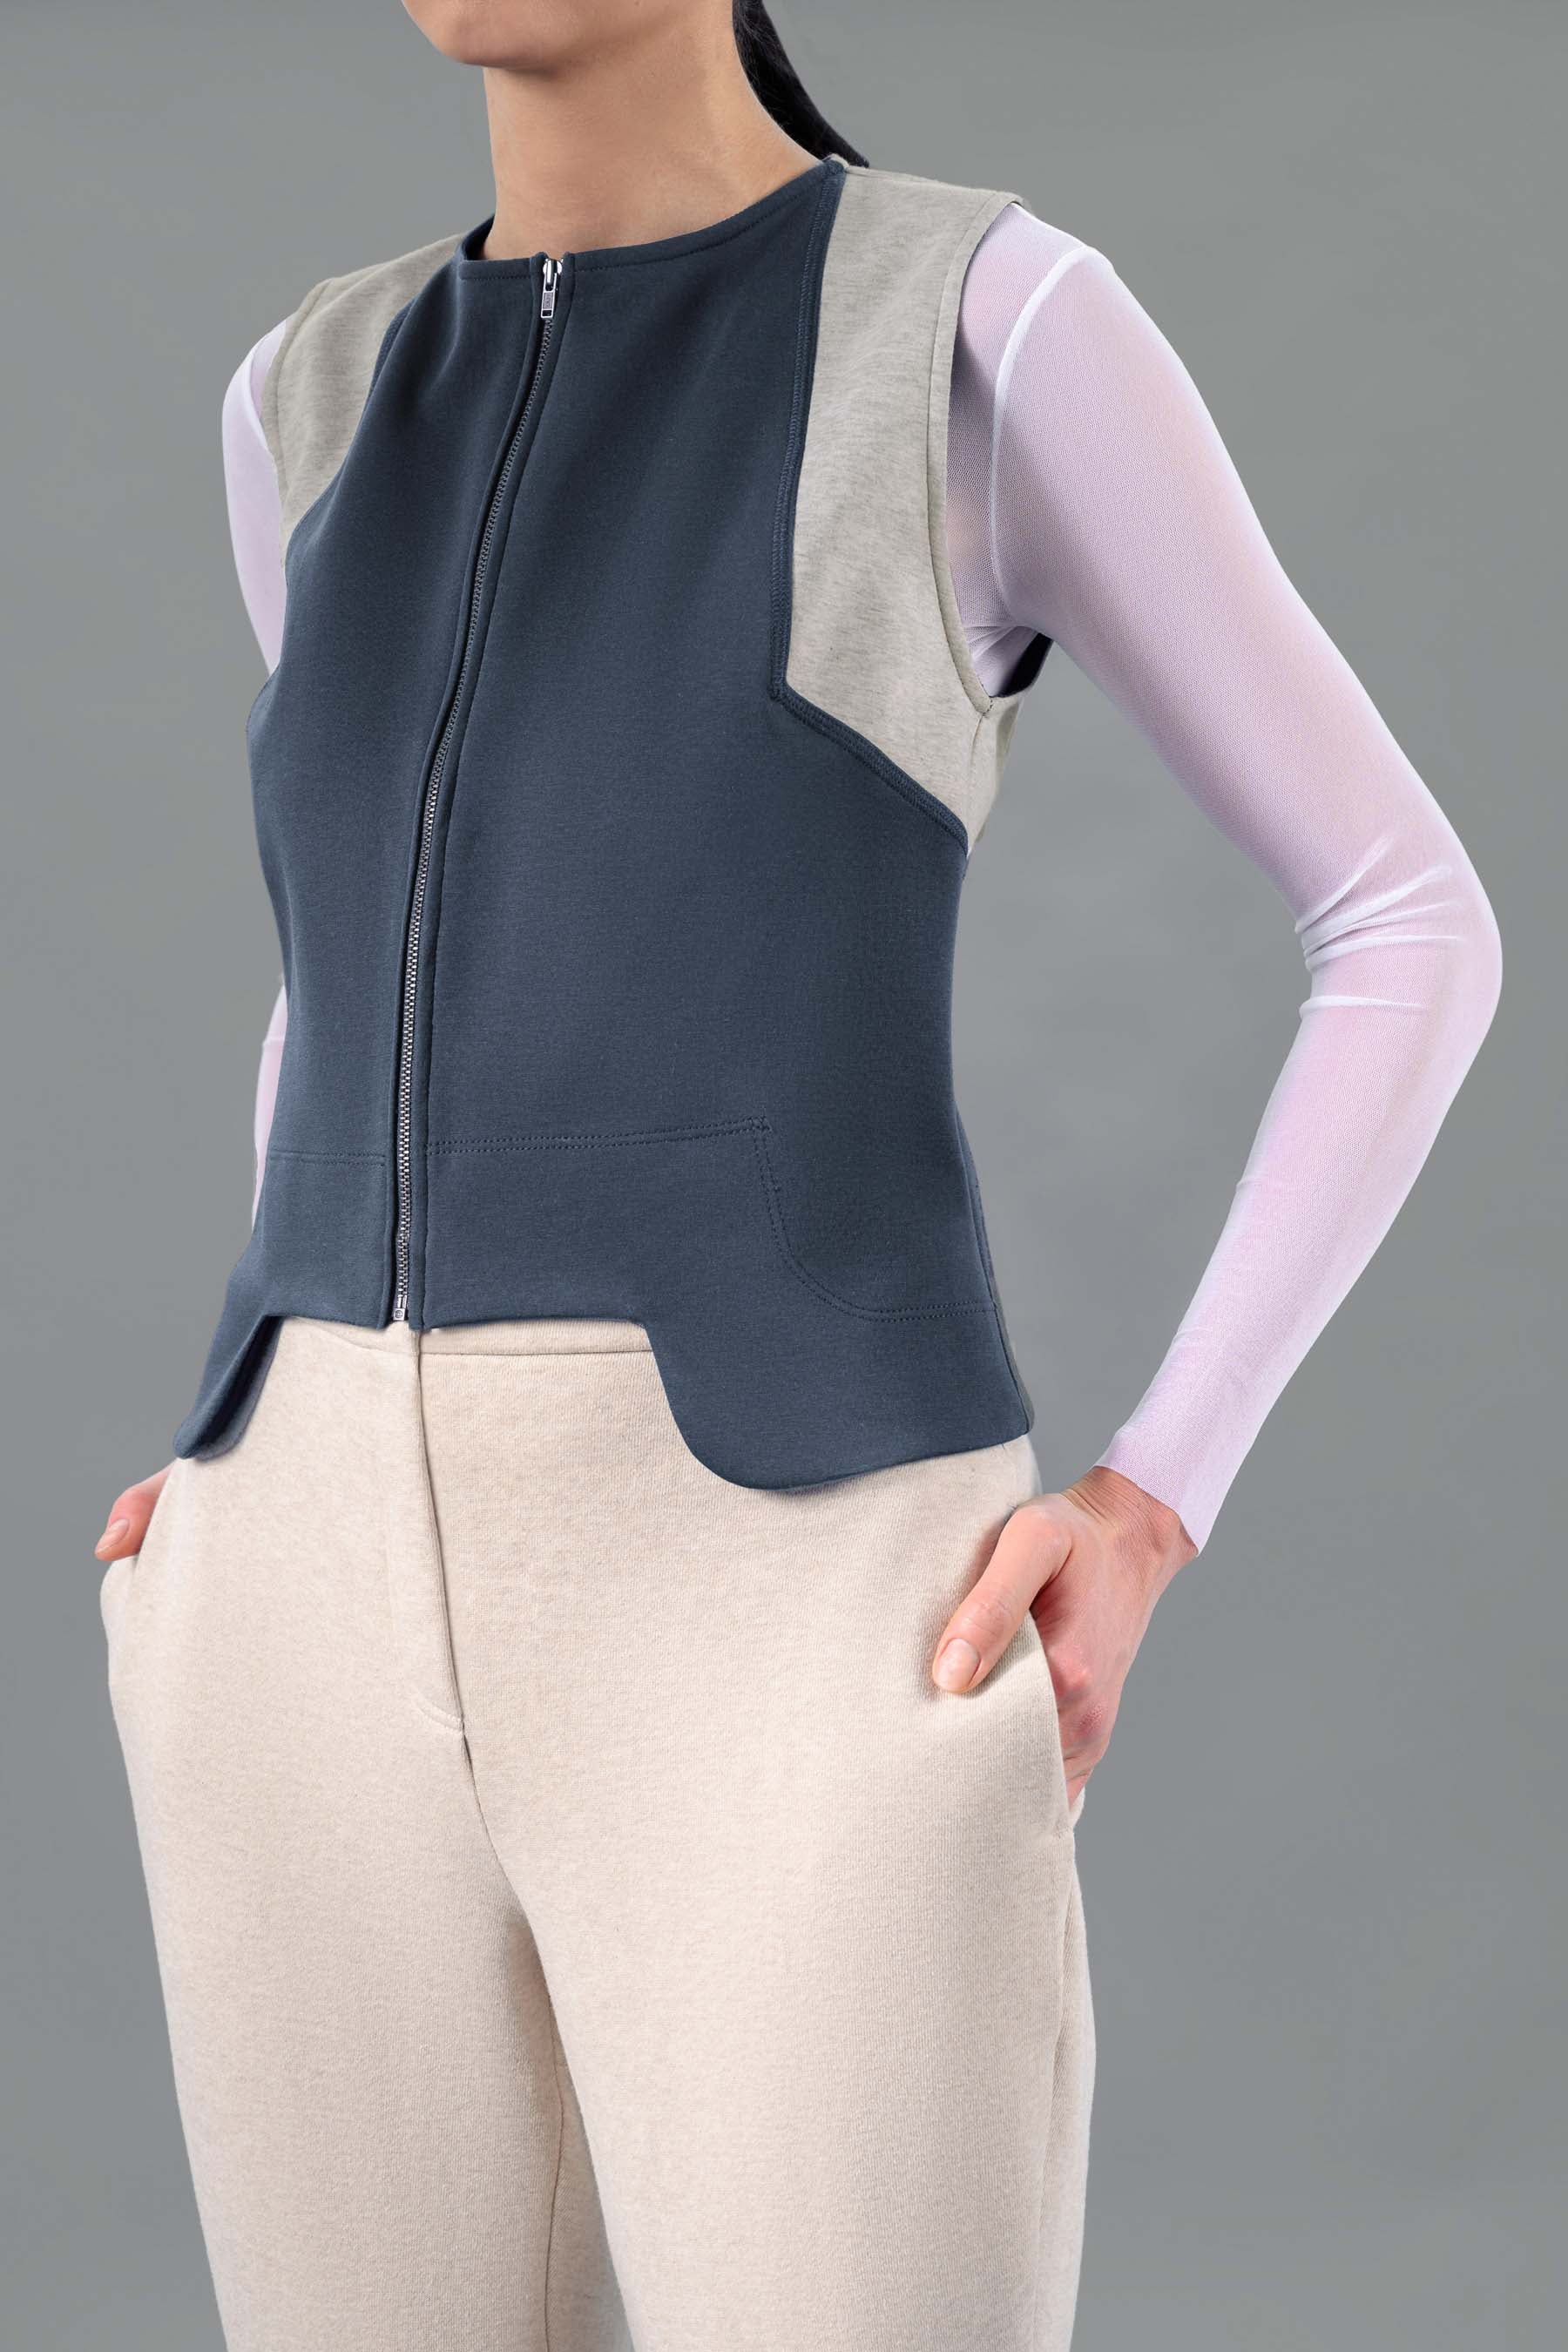 Tae Zip Front Colorblock Sleeveless Vest, Navy-Grey